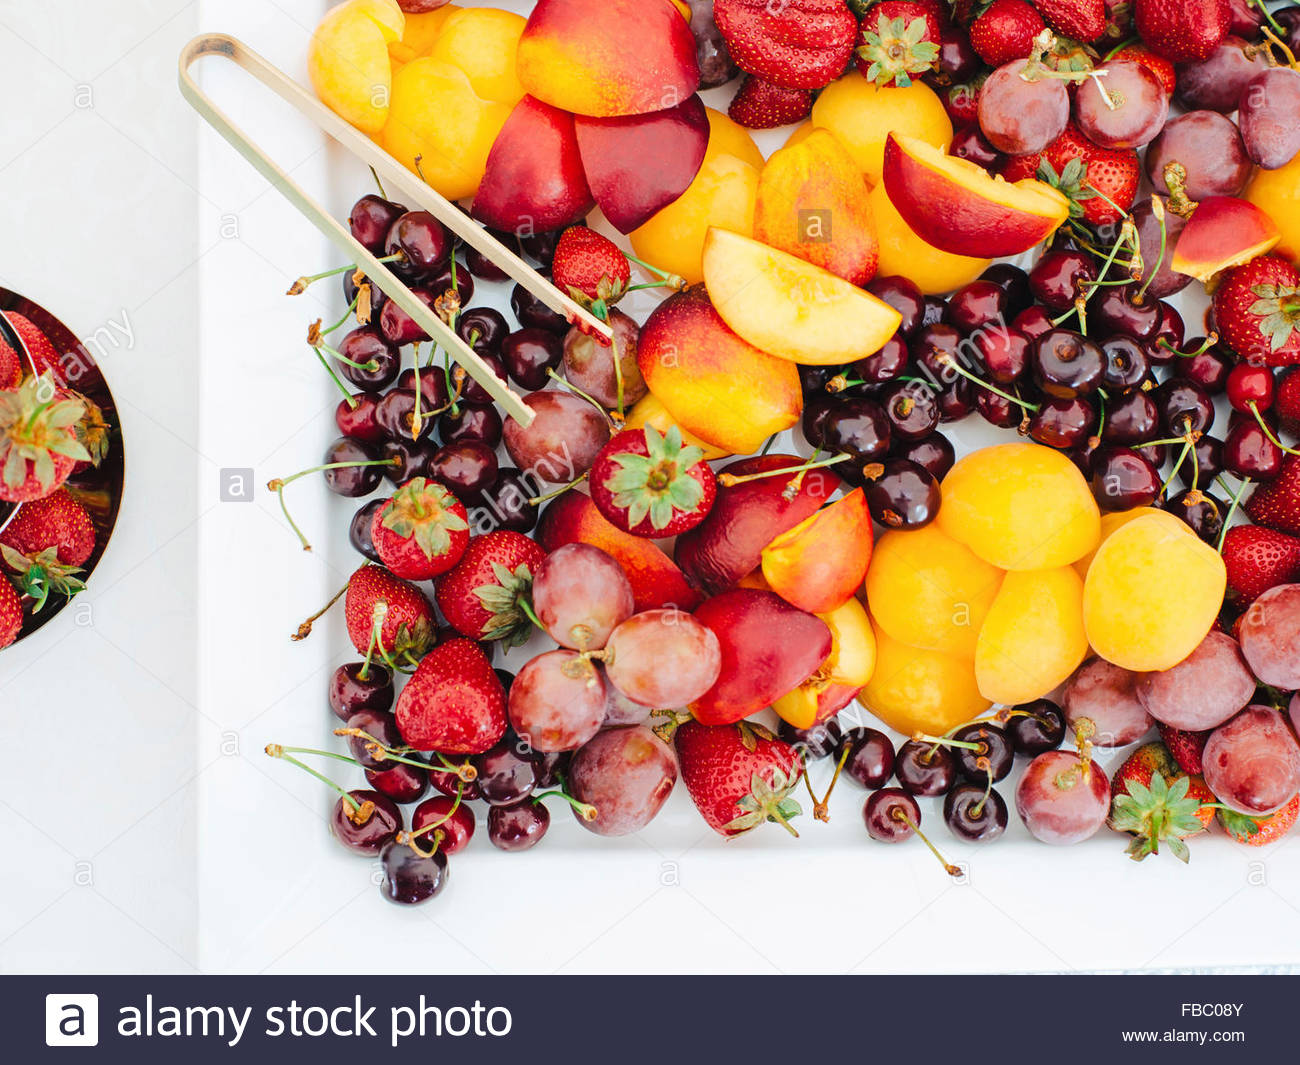 White plate with fruits and berries on table outdoor - Stock Image